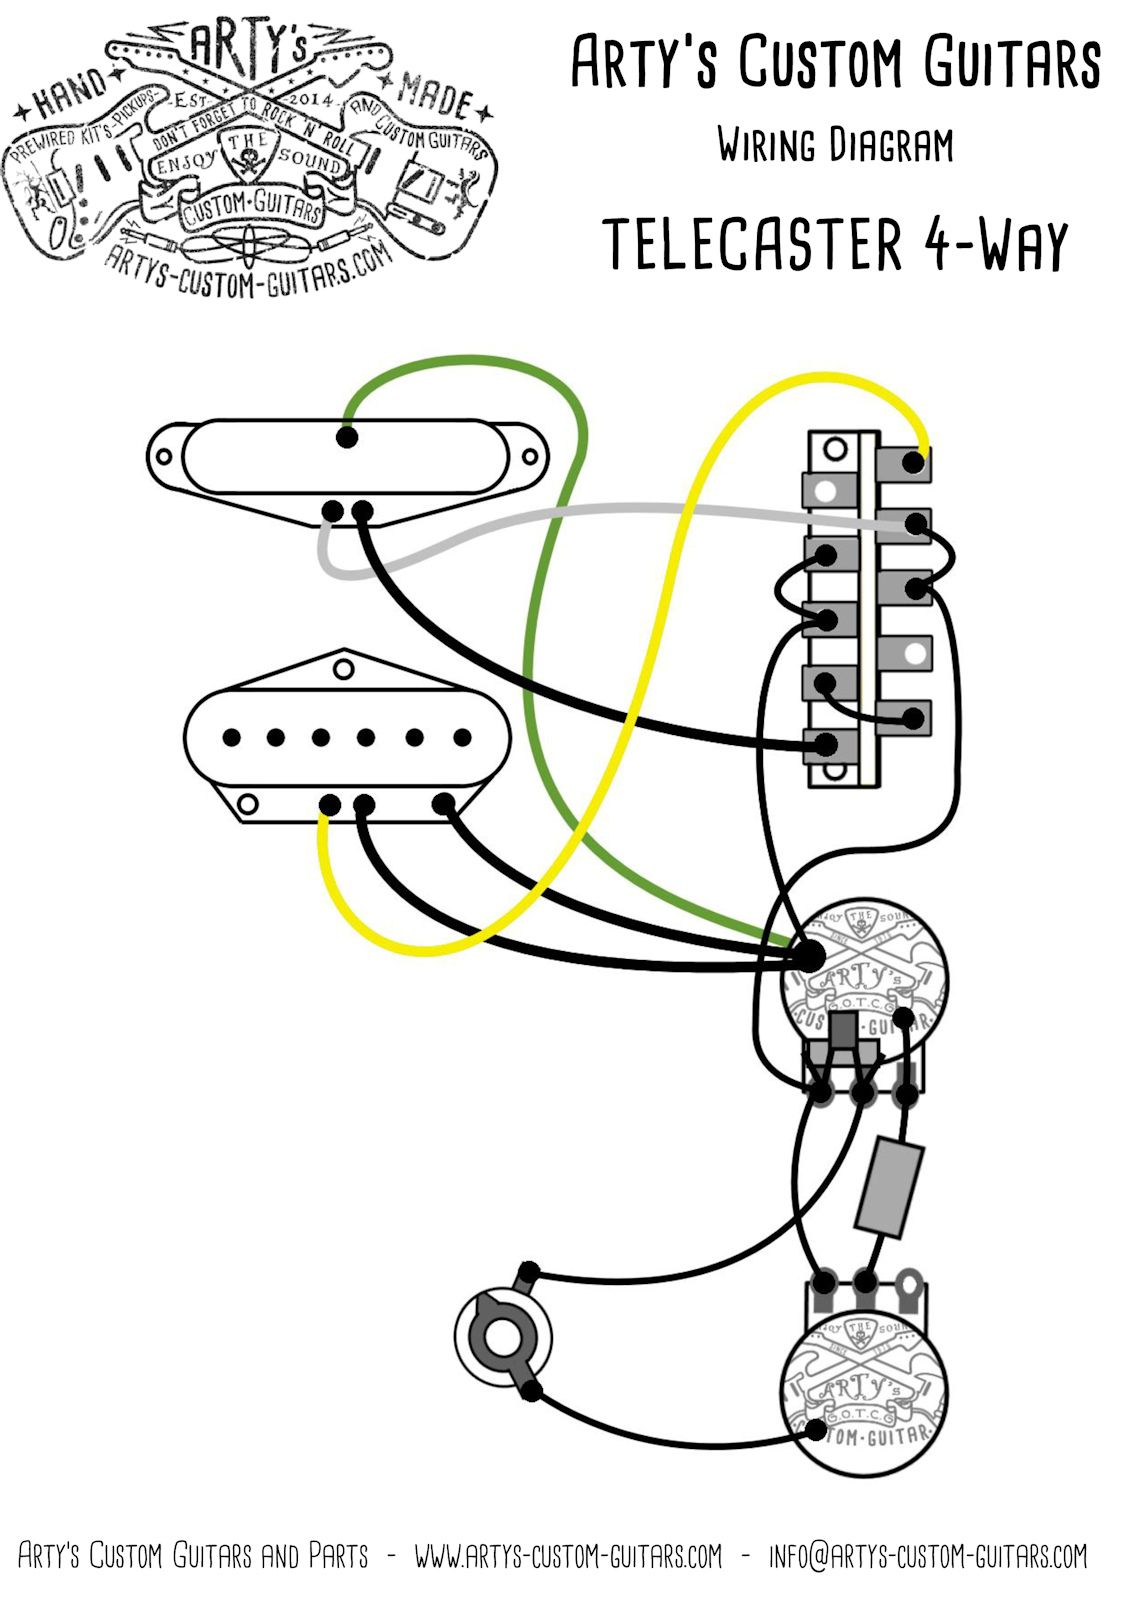 hight resolution of arty s custom guitars wiring diagram plan telecaster assembly harness tele